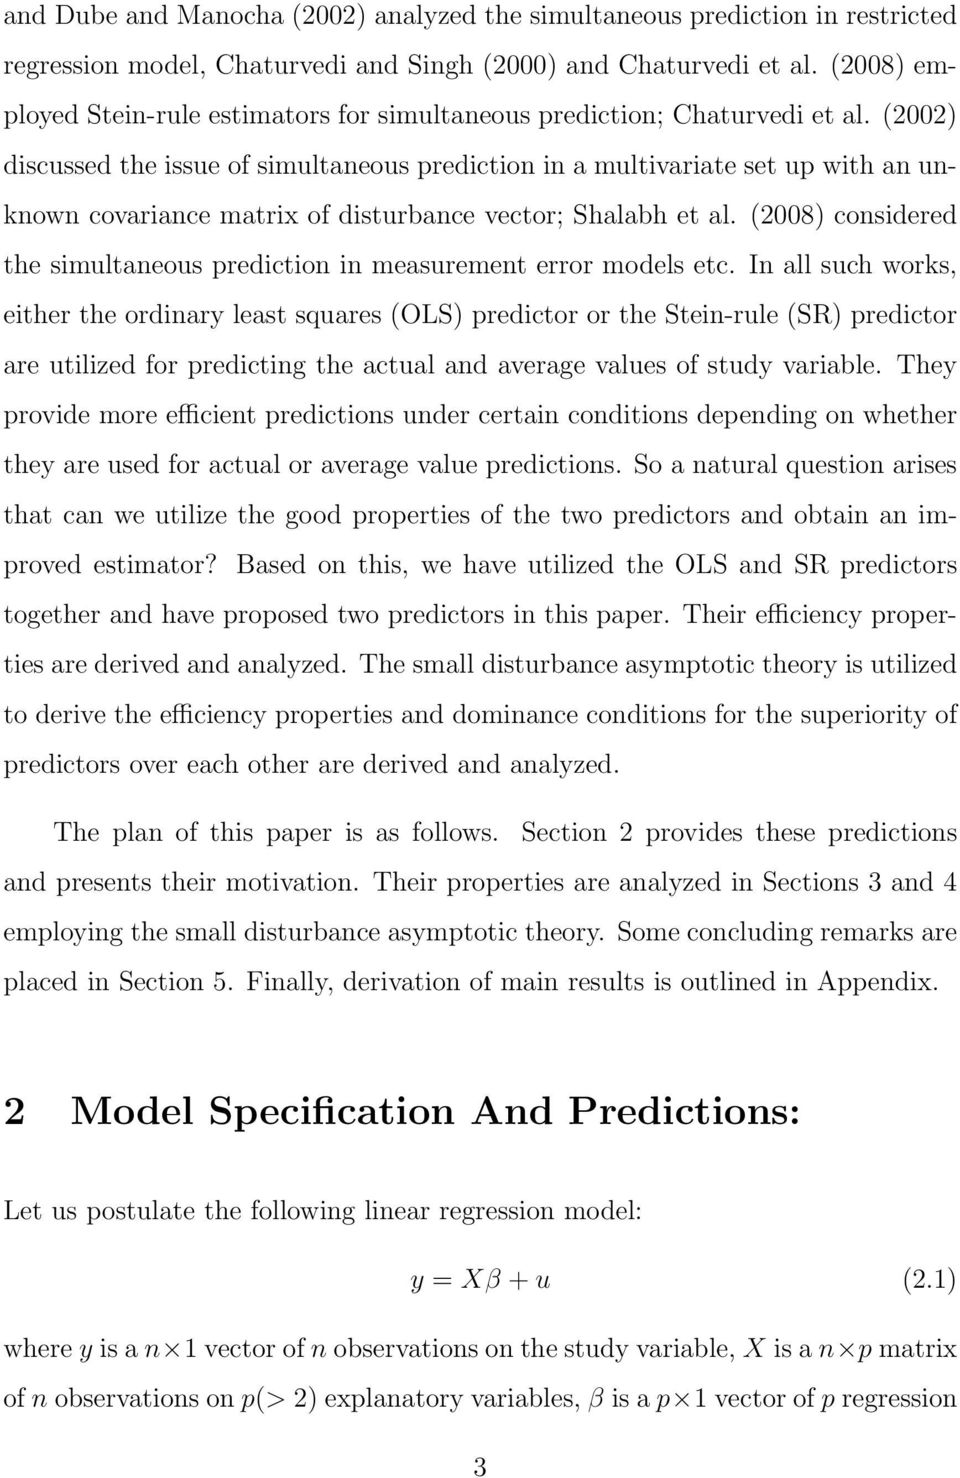 (2002) discussed the issue of simultaneous prediction in a multivariate set up with an unknown covariance matrix of disturbance vector; Shalabh et al.